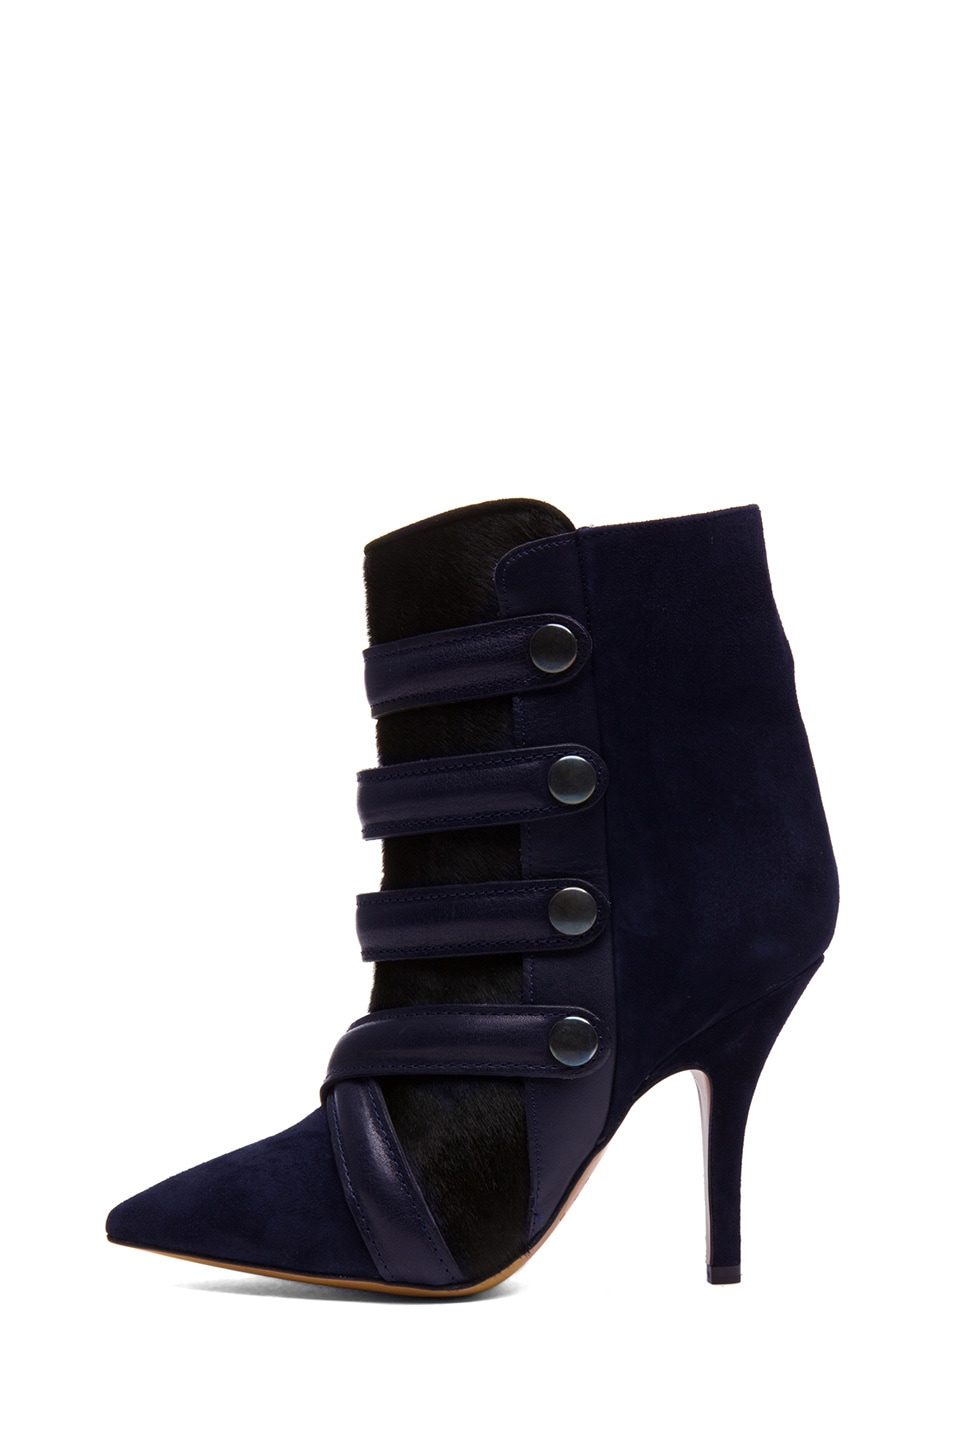 Image 1 of Isabel Marant Tacy Goat Suede Leather Pony Booties in Midnight